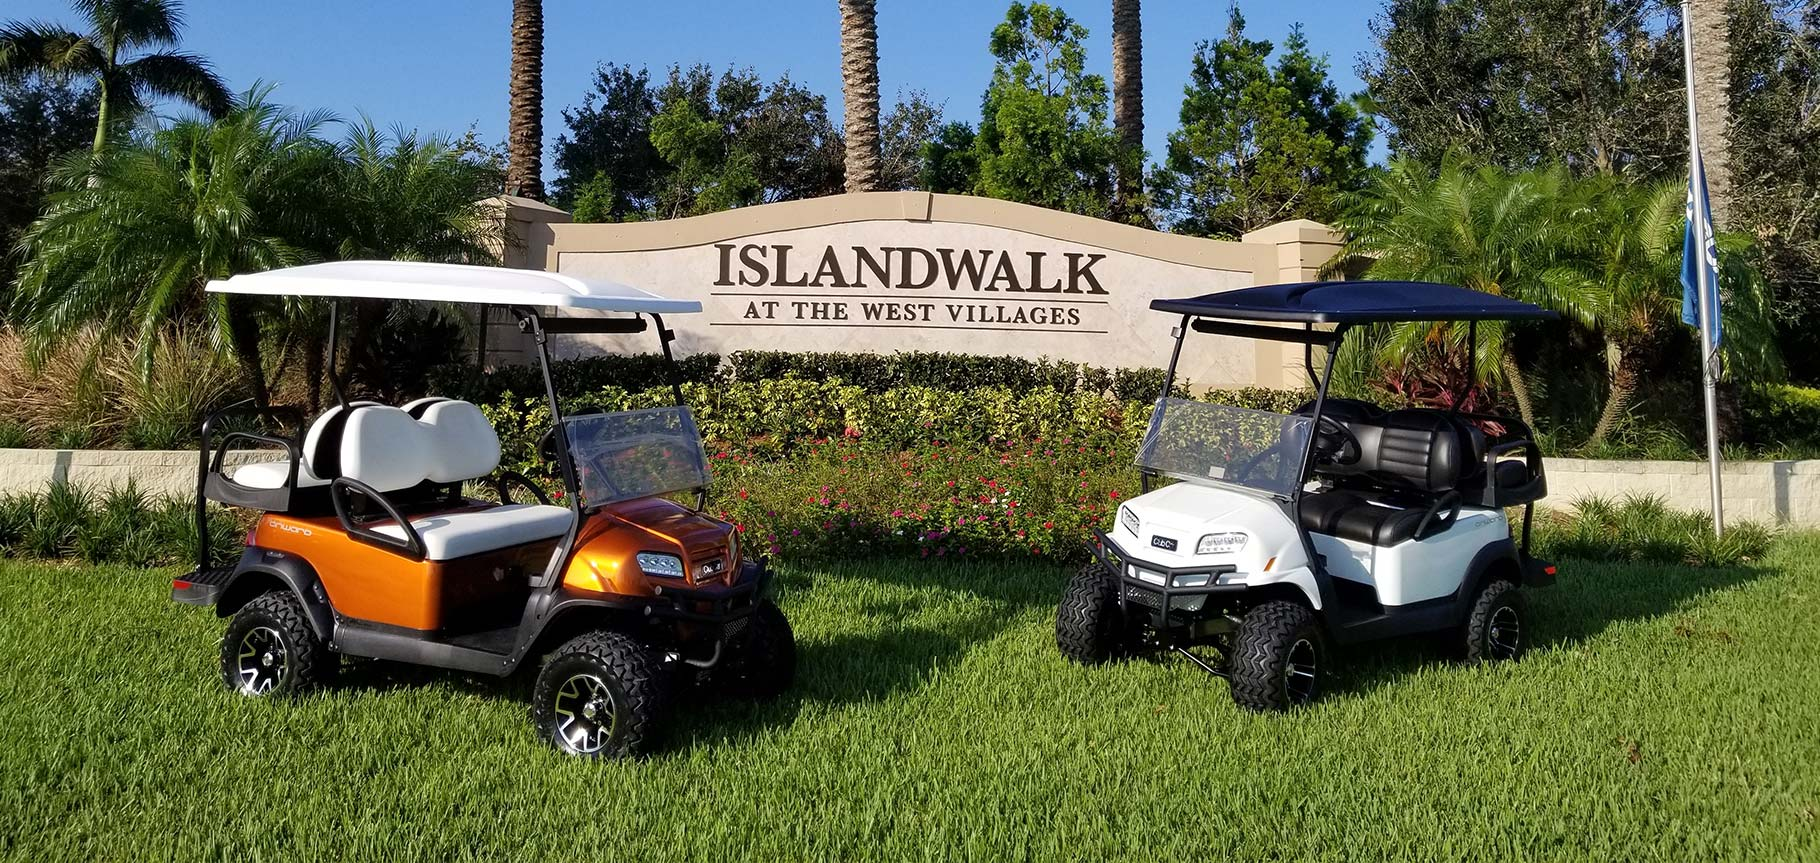 Islandwalk entrance sign with golf carts image